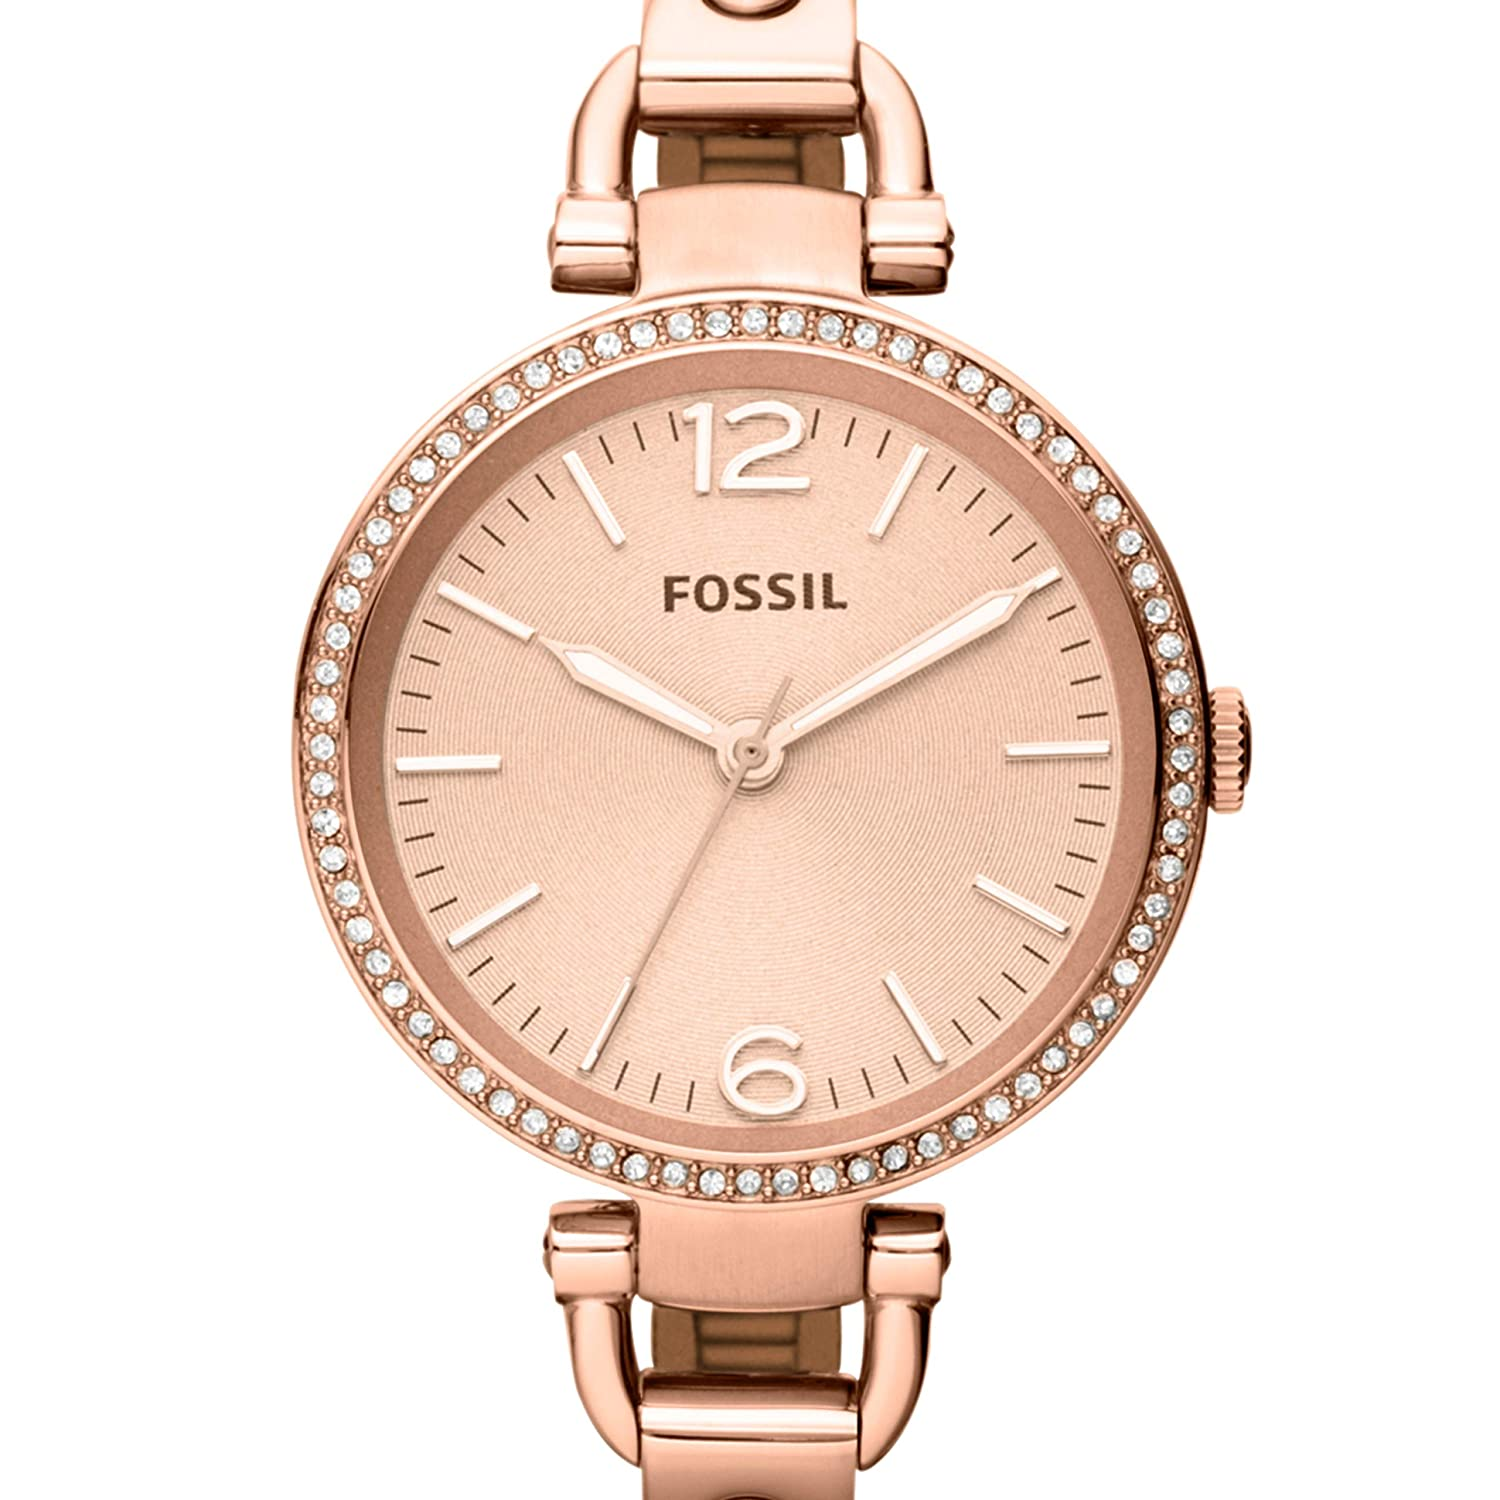 a7aec542c Amazon.com: Fossil Women's Georgia Quartz Stainless Steel Dress Watch,  Color: Rose Gold (Model: ES3226): Fossil: Watches